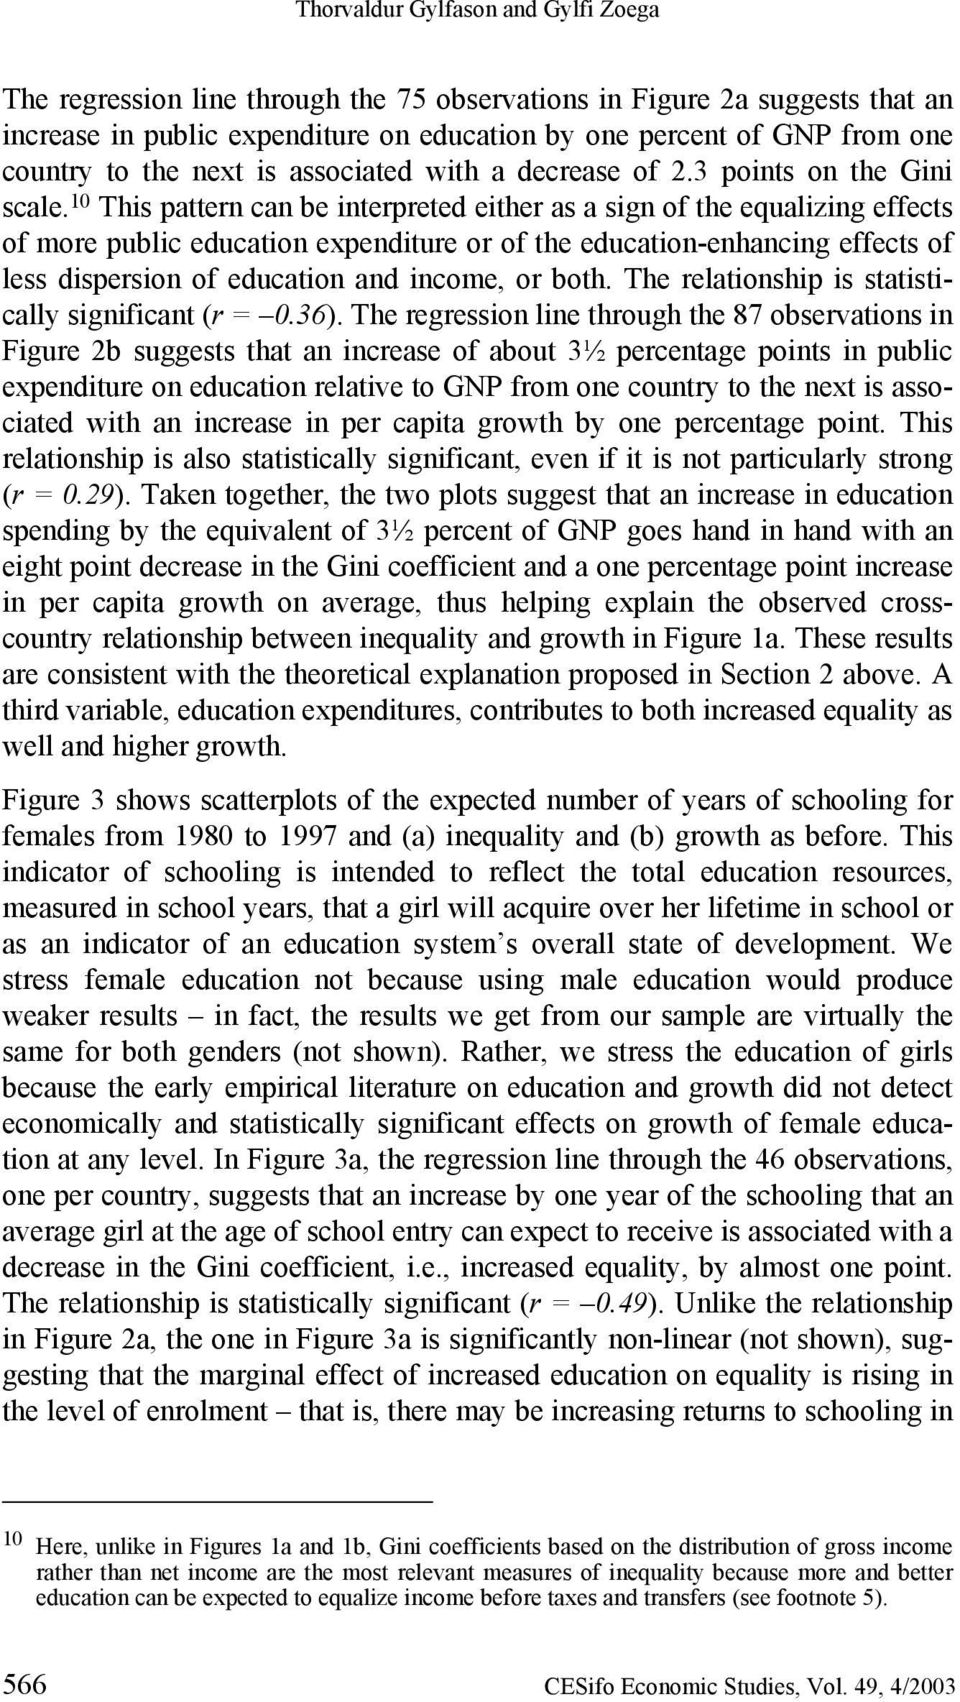 10 This pattern can be interpreted either as a sign of the equalizing effects of more public education expenditure or of the education-enhancing effects of less dispersion of education and income, or